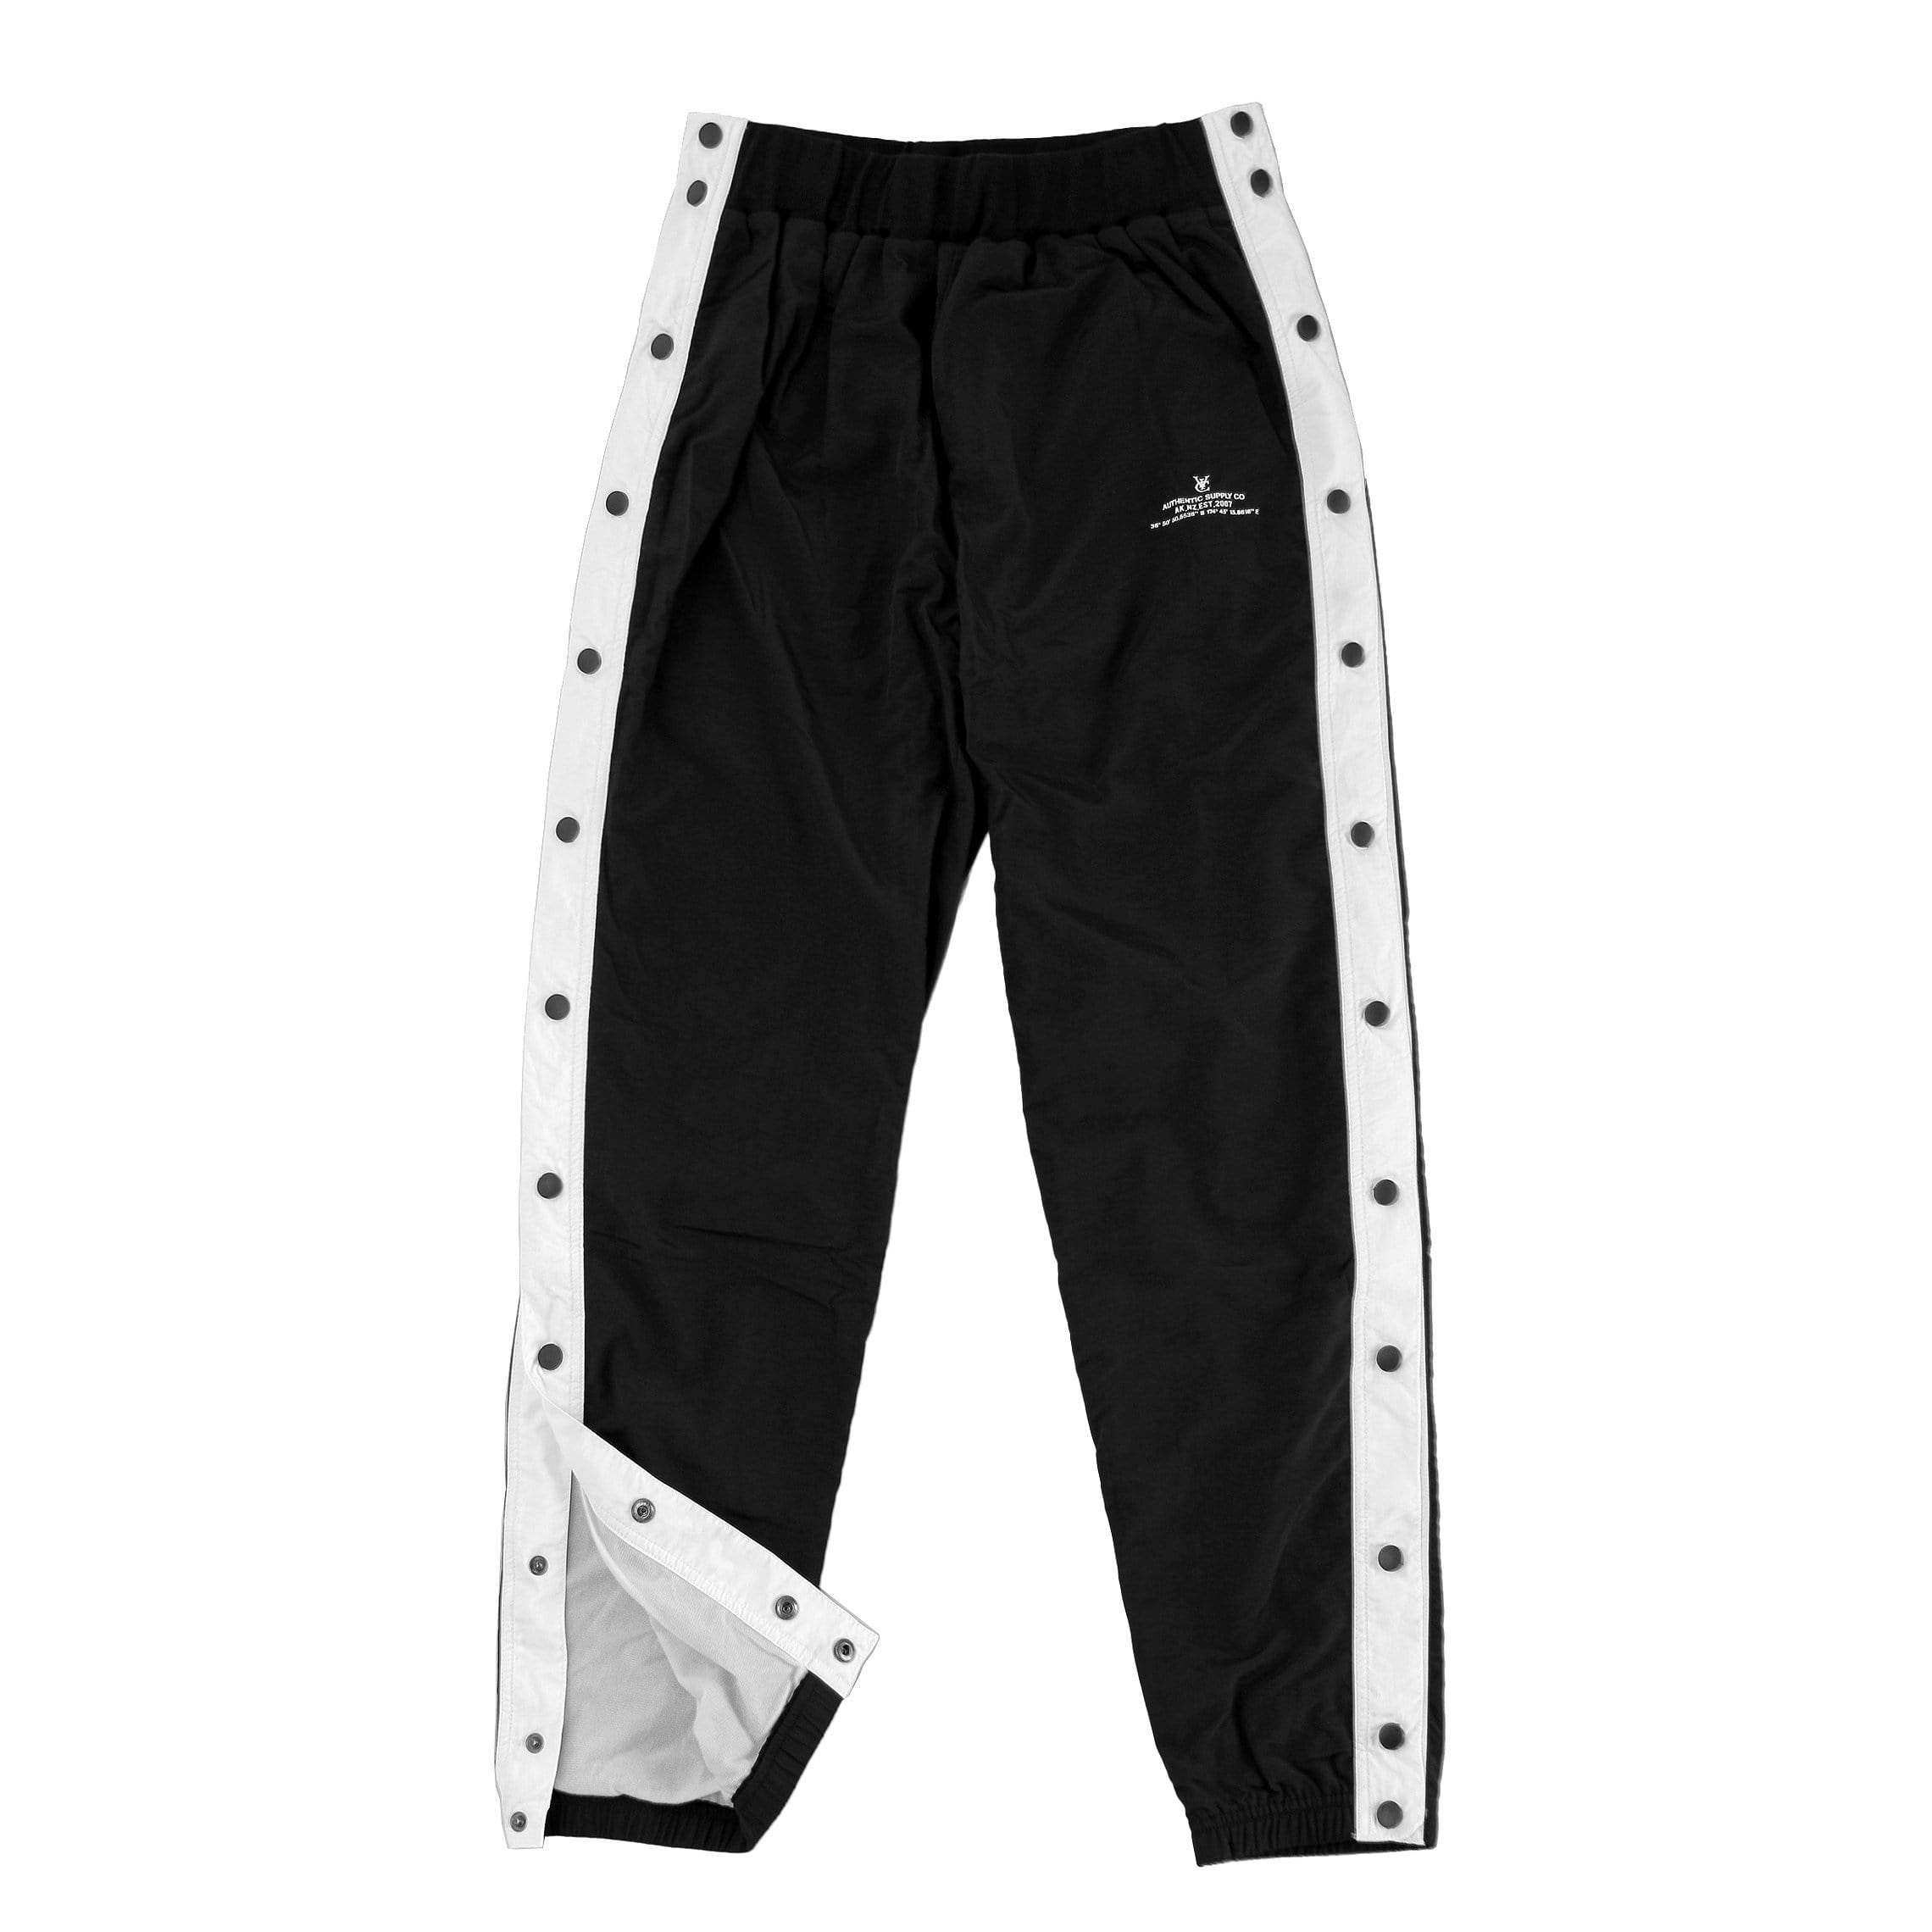 Men's and Women's Warm up tearaway snap track pants in black by New Zealand skate and streetwear clothing label VIC Apparel. American 90s vintage sportswear style. Slim fit.